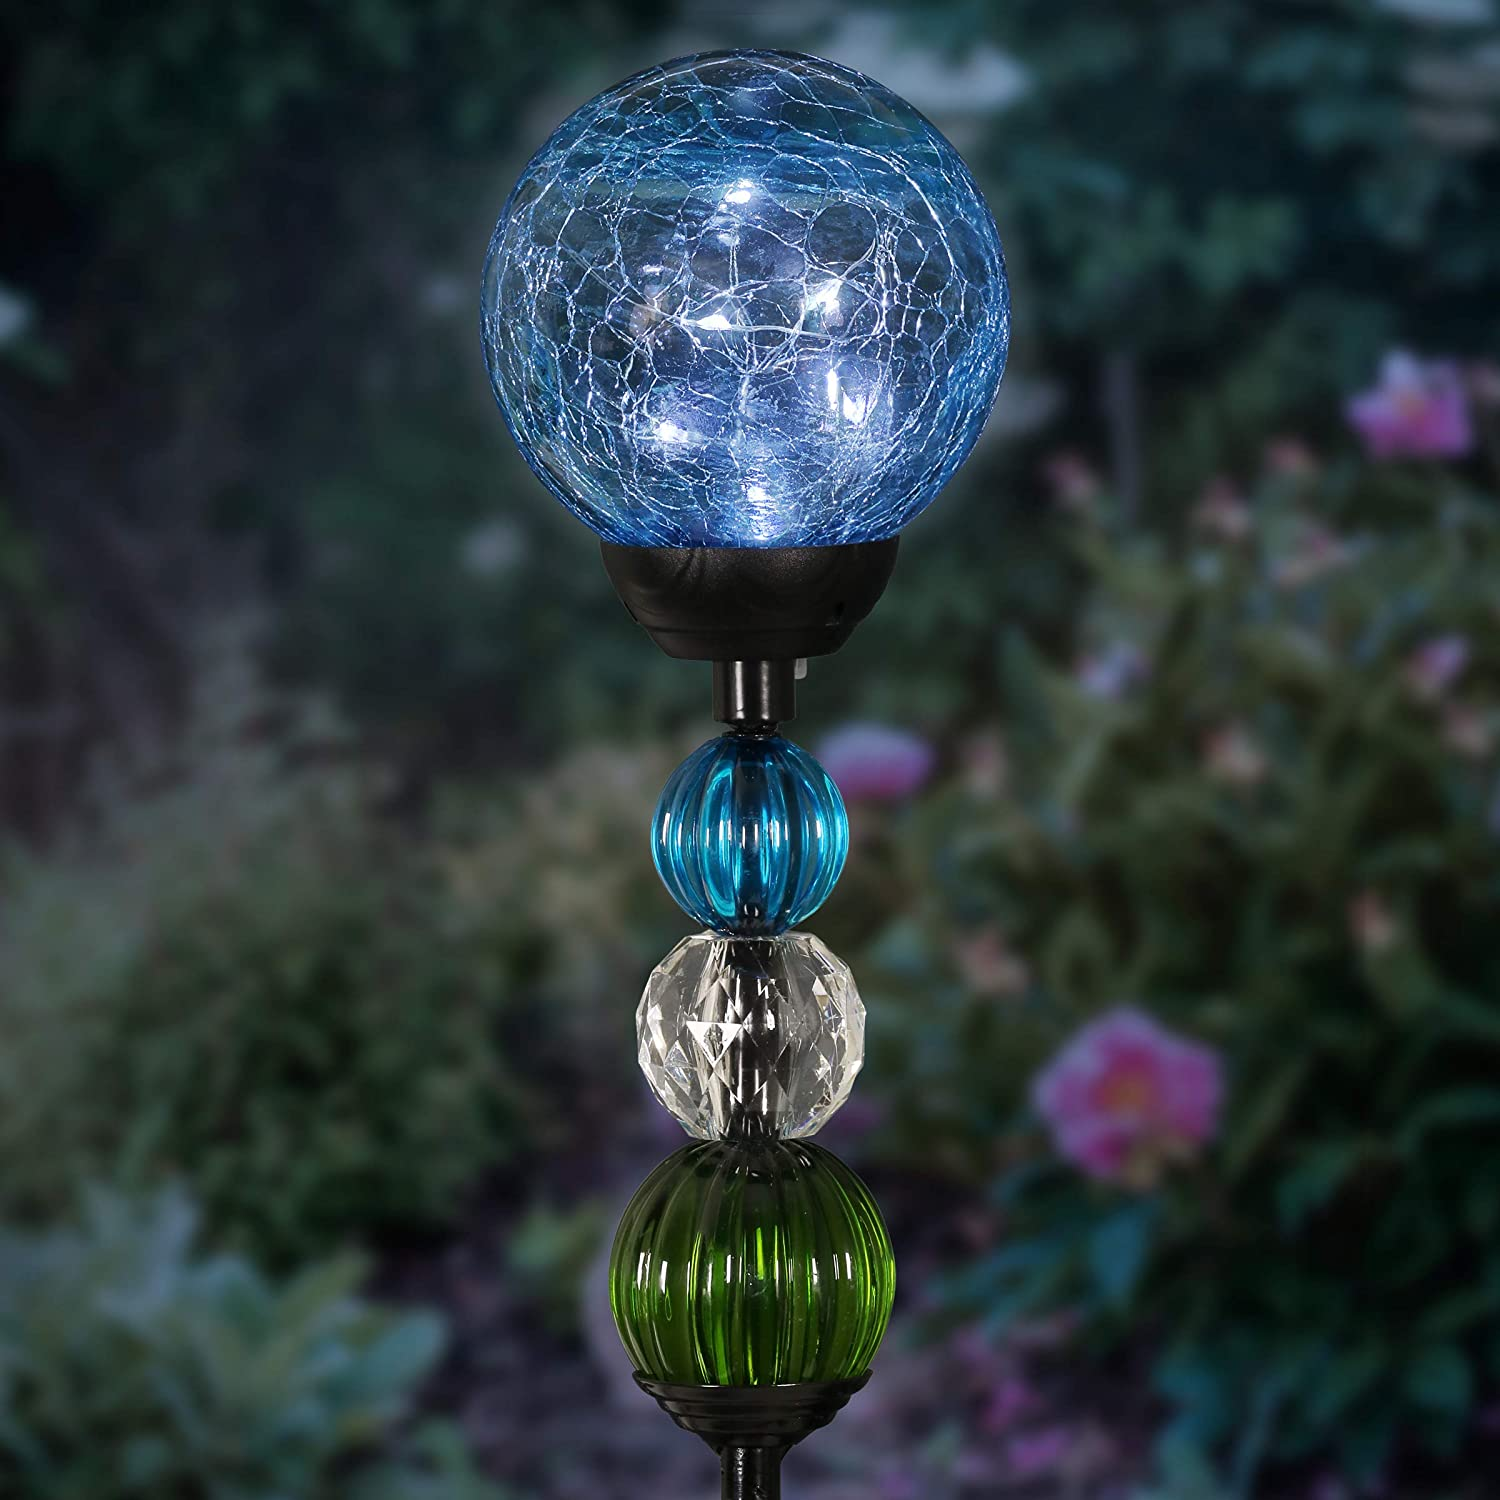 Exhart Solar Blue Cracked Crystal Ball Yard Stake w/ 6 LED Lights & Glass Ball Bead Details - Glass Globe Metal Stake, Glass Ball Ground Stake, Glass Orb Outdoor Lights, 3.5